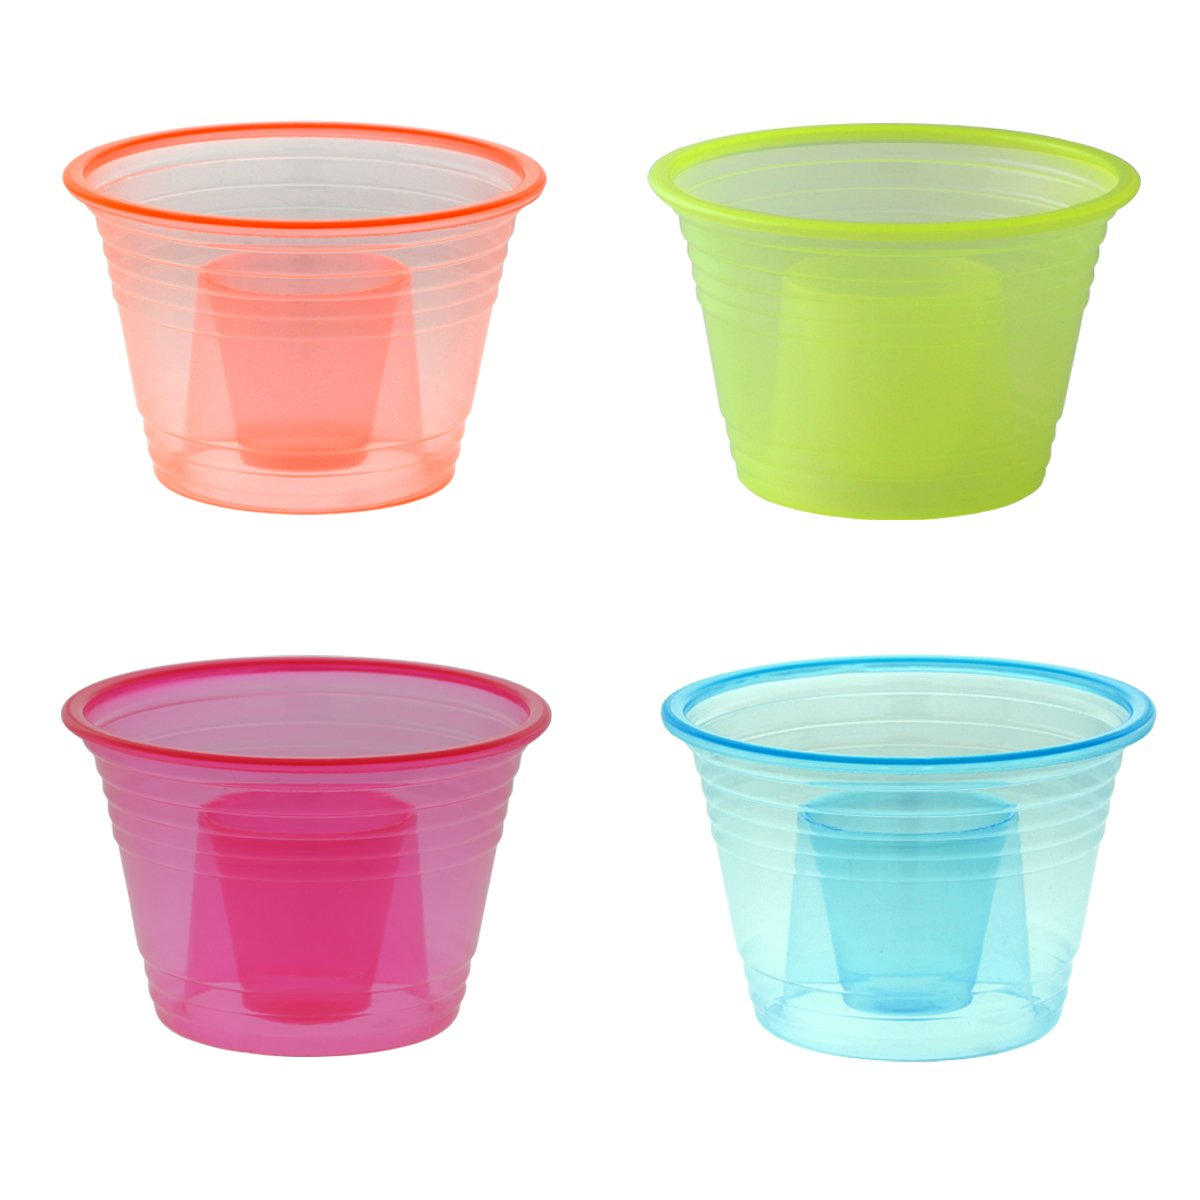 Zappy 100 Assorted Neon Colors Disposable Plastic Party Bomber Power Bomber Jager Bomb Cups Shot Glass Glasses Shot Cup Cups Jager bomb glasses Bomb shot glasses Bomber cups Bomber glasses USA SYNCHKG052136